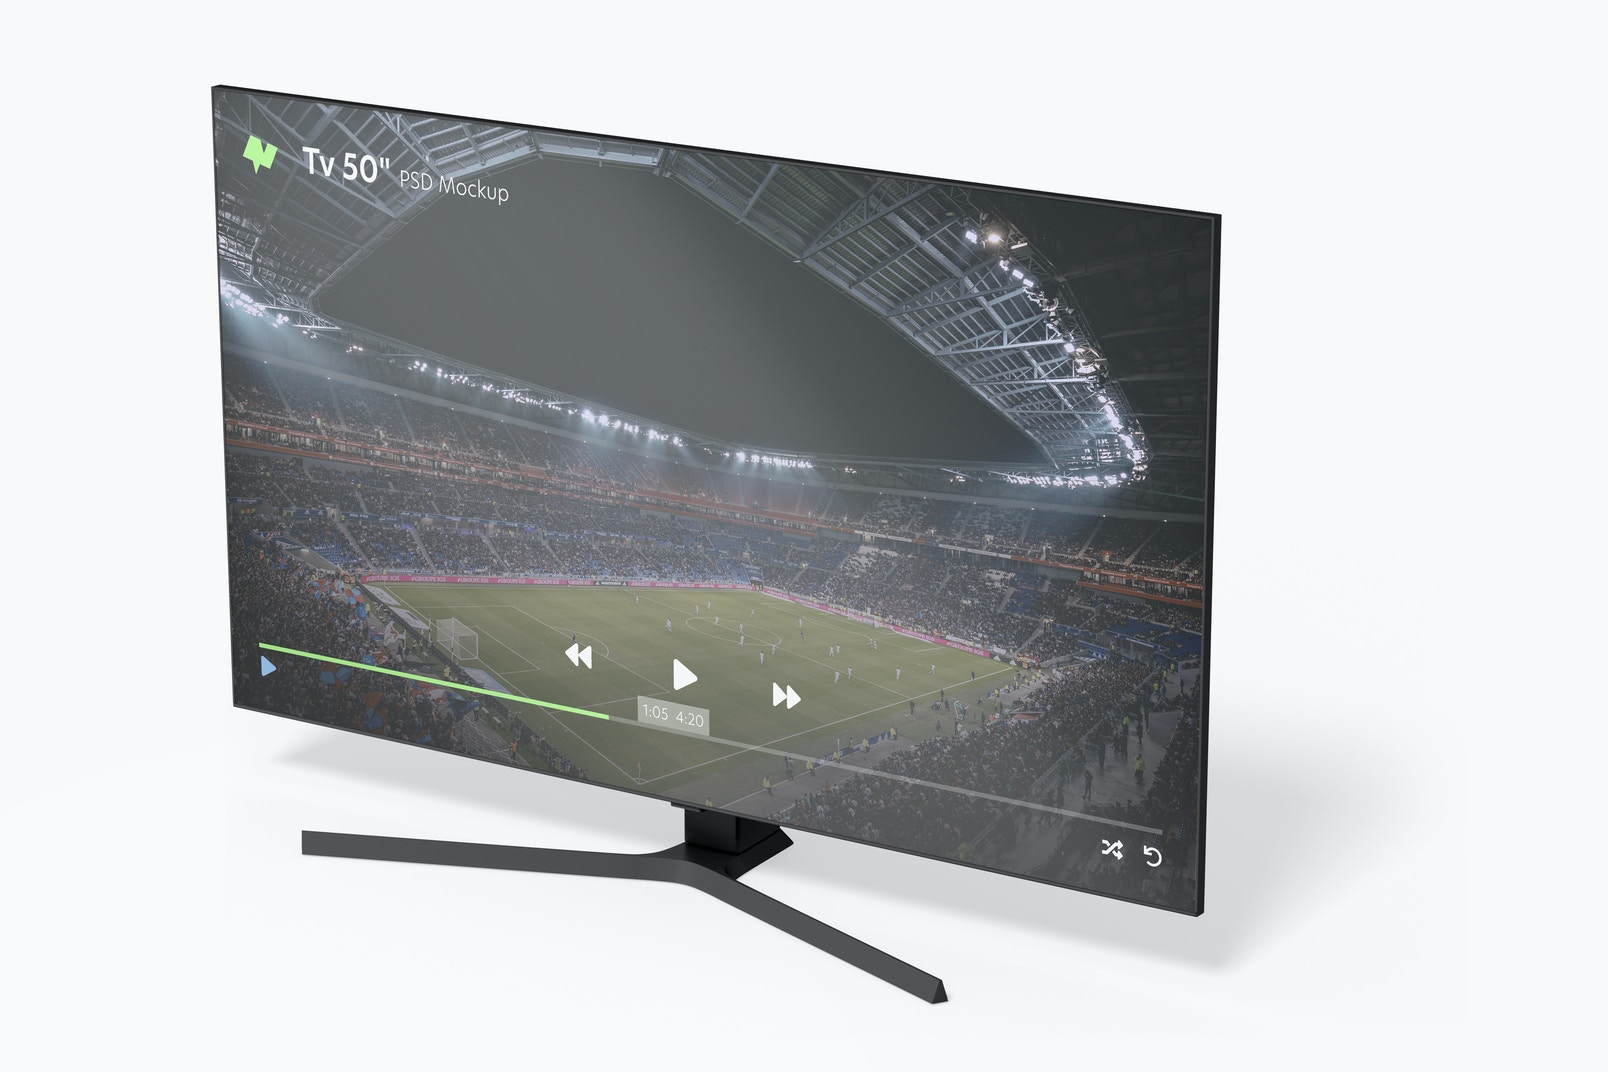 """Tv 50"""" Mockup, Right View"""